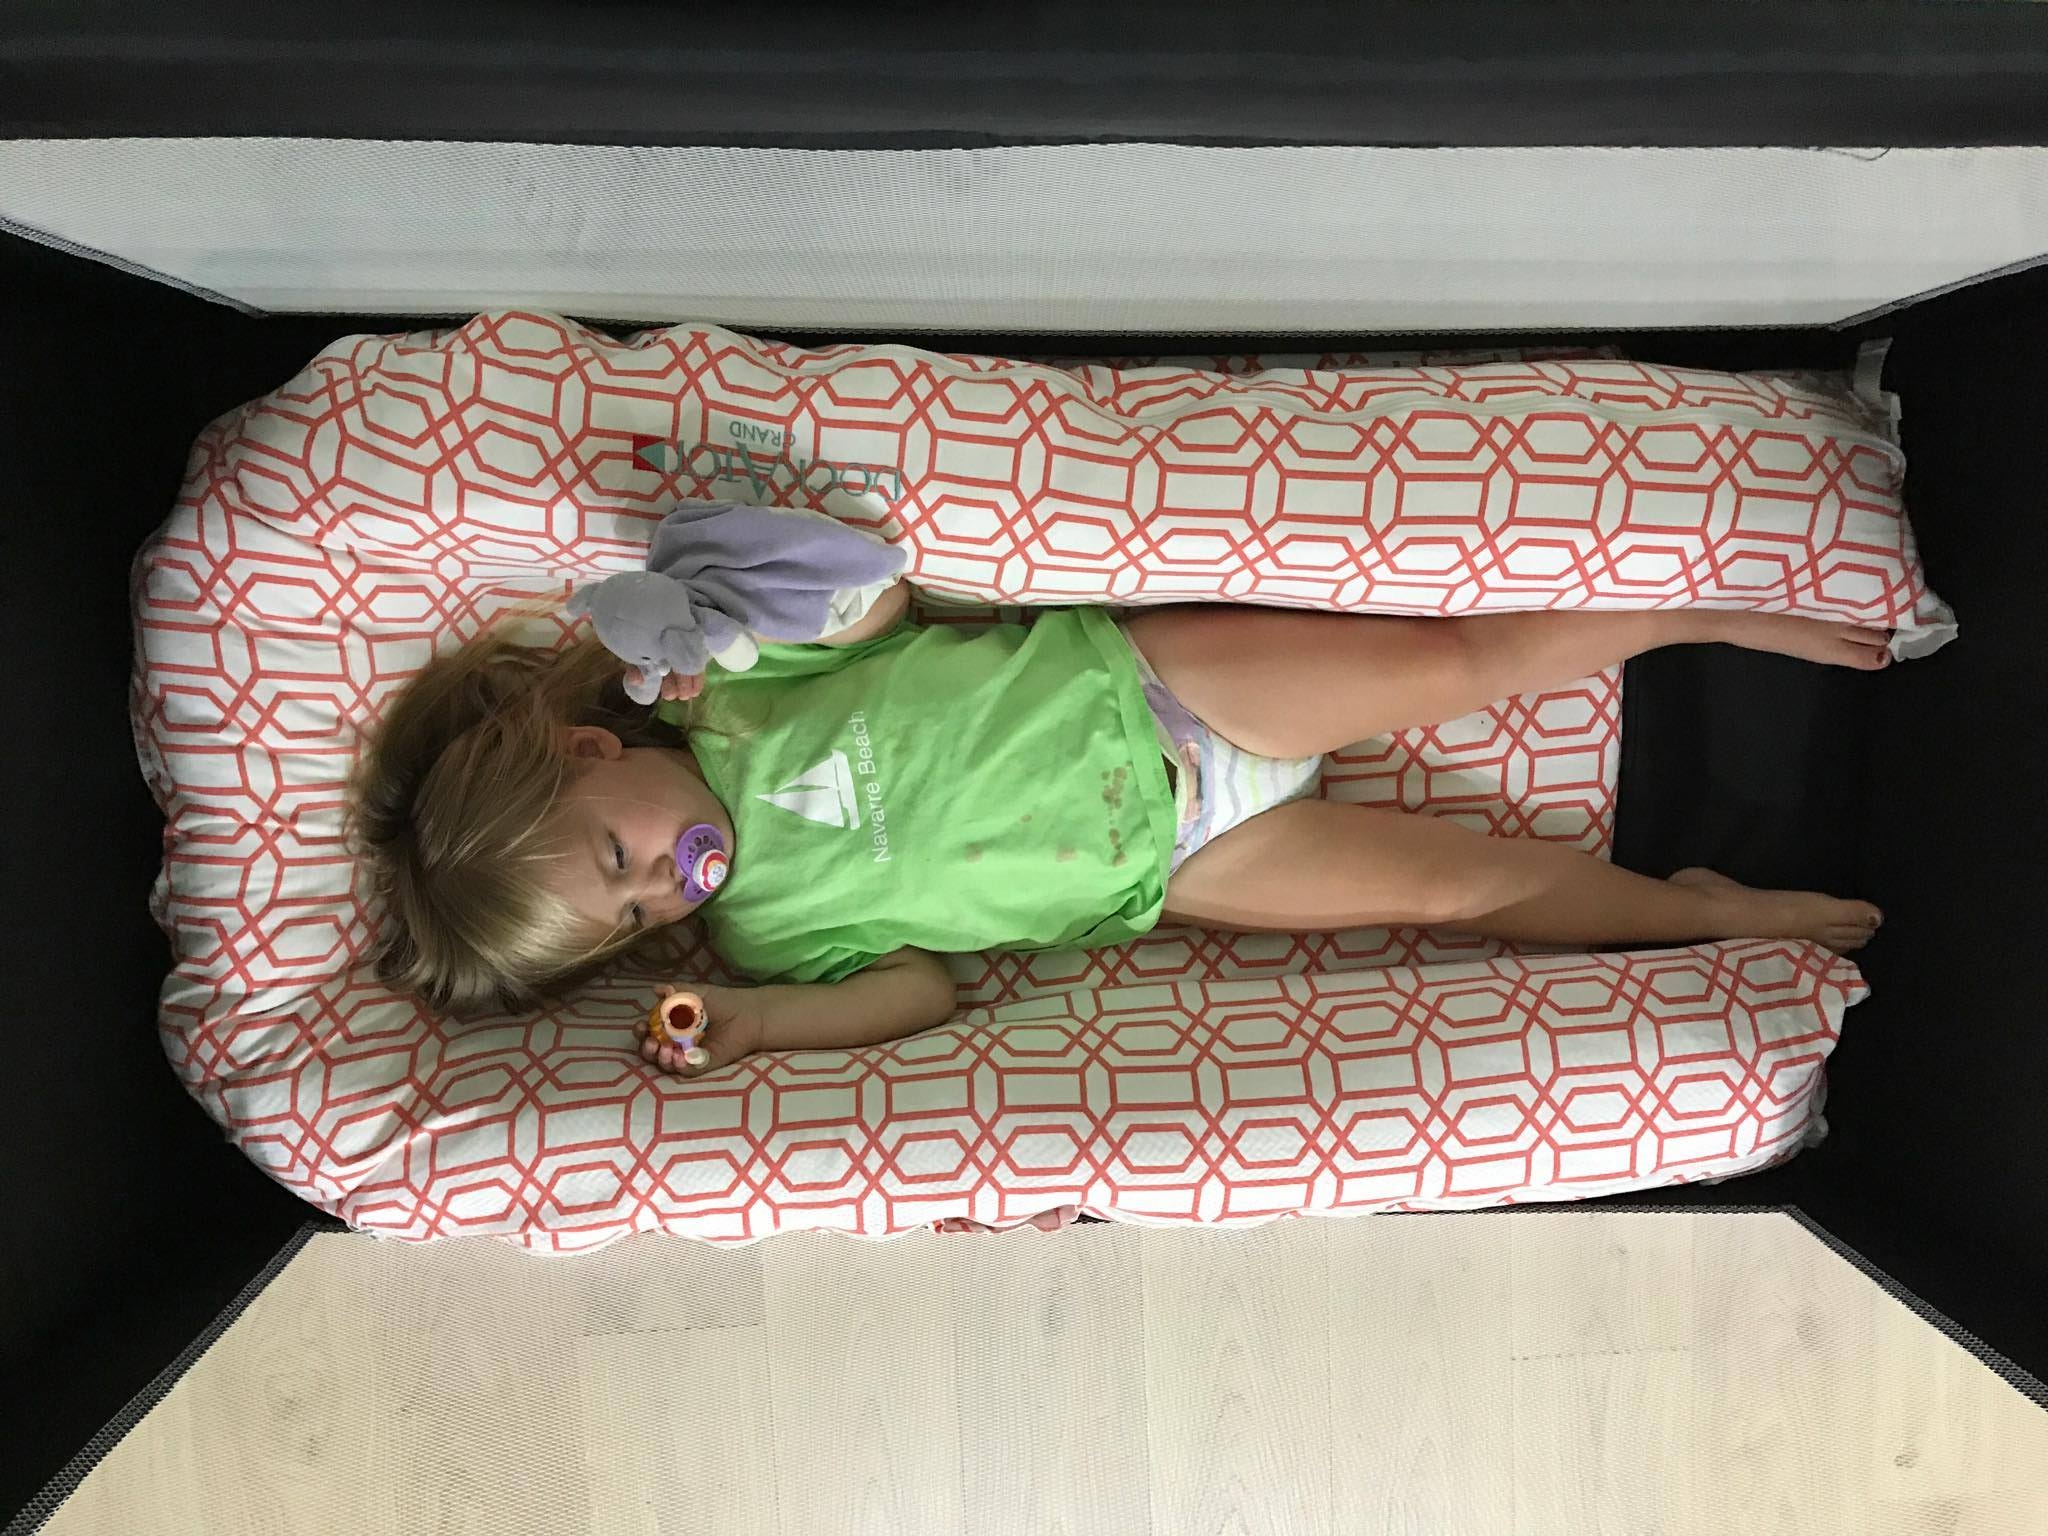 Charletta at 2 years, 4 months in an extended length travel cot -- she can fully extend her legs and sleep on her stomach. (also, don't pay attention to her stained tshirt)